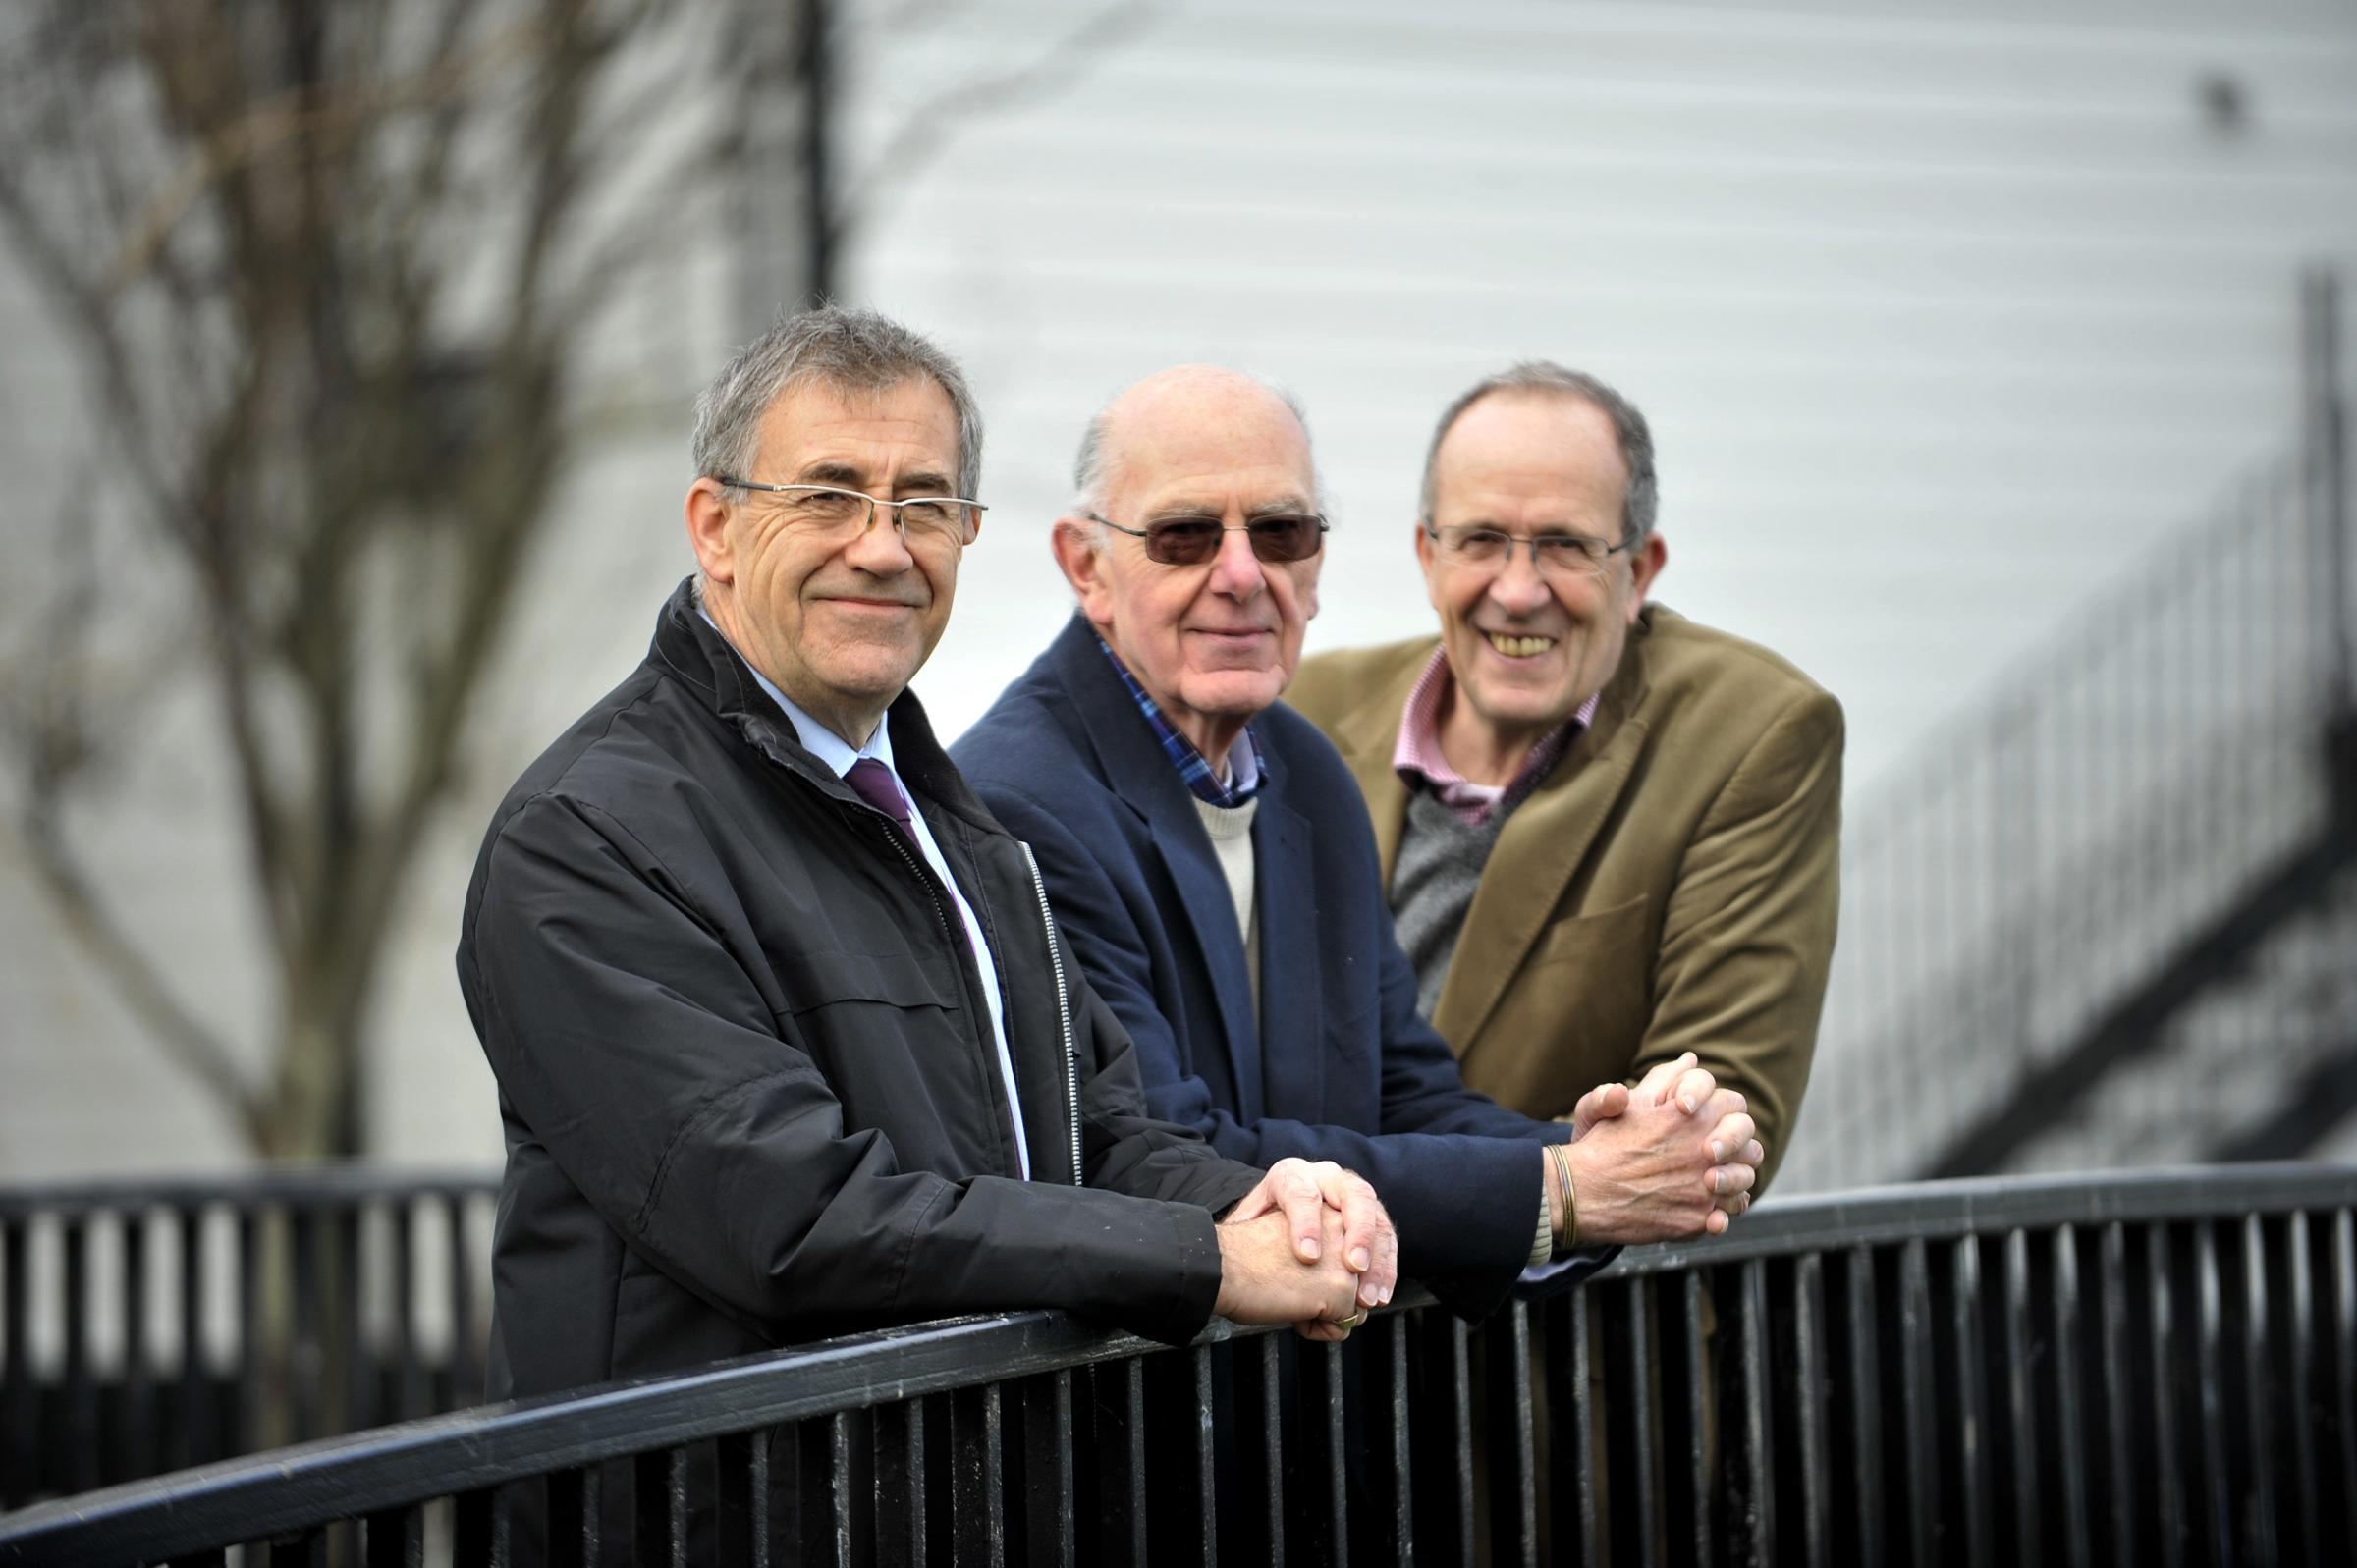 Independent councillors Martin Terry, Mike Stafford and Ron Woodley